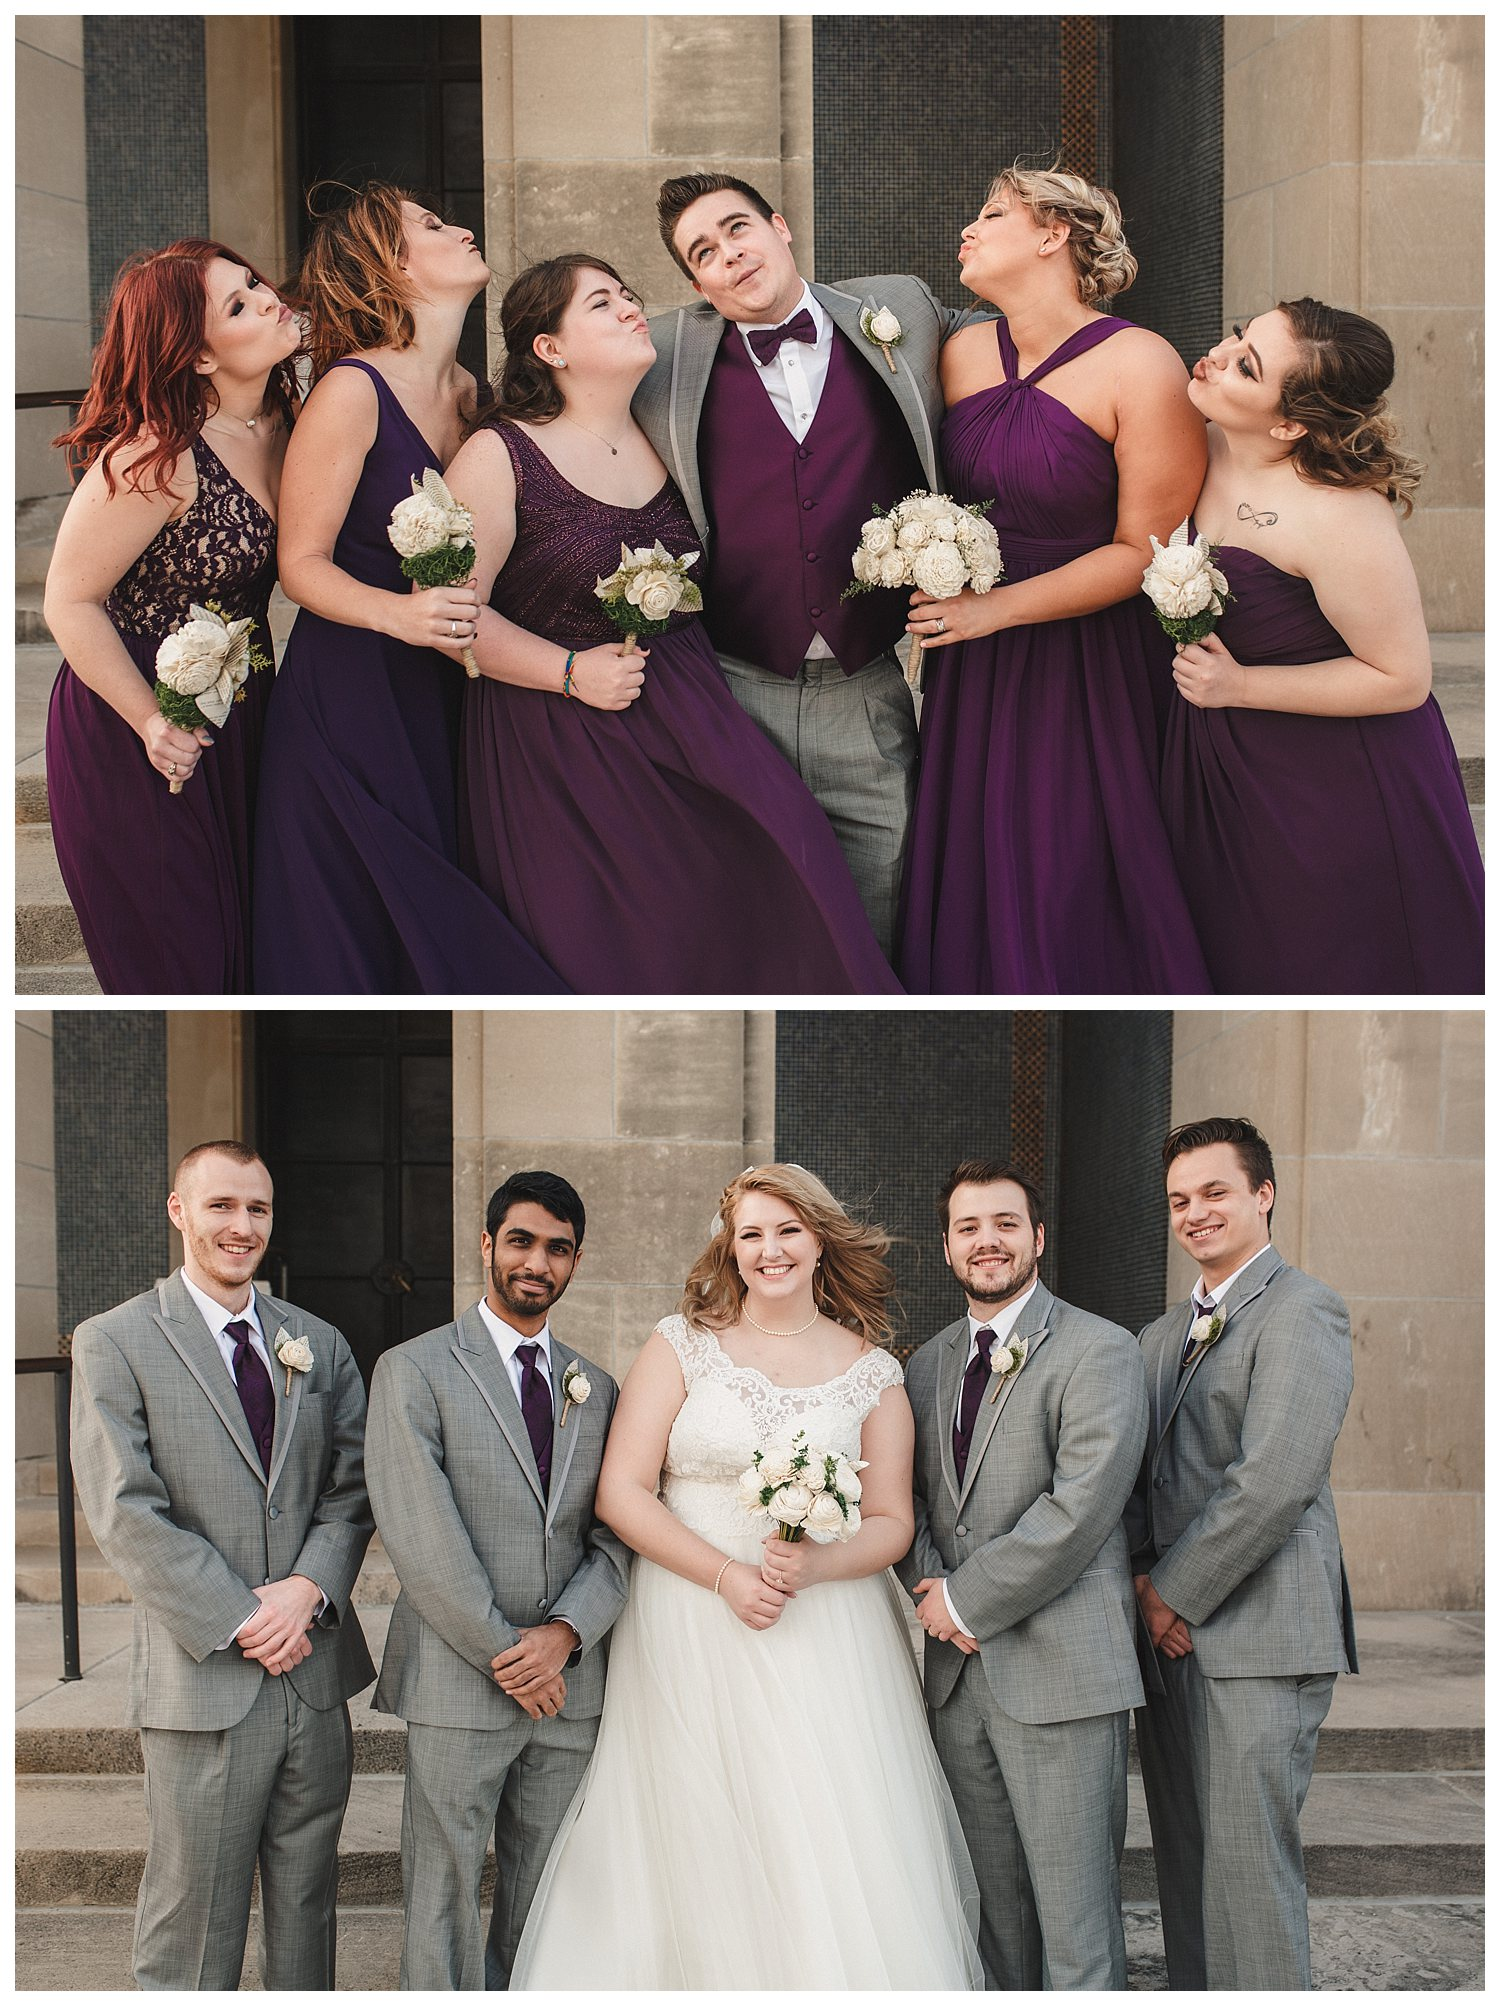 Kelsey_Diane_Photography_Loose_Mansion_Wedding_Photography_Kansas_City_Victor_Lyndsay_0356.jpg